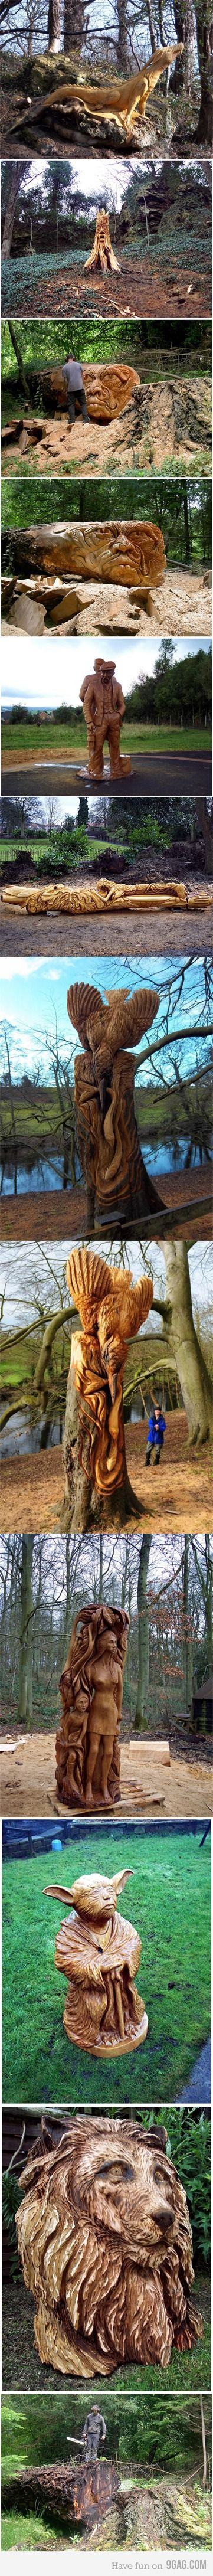 17 Best Images About Wood Carvings On Pinterest Carving Circuit Board Copper Group Picture Image By Tag Keywordpictures Mother Of